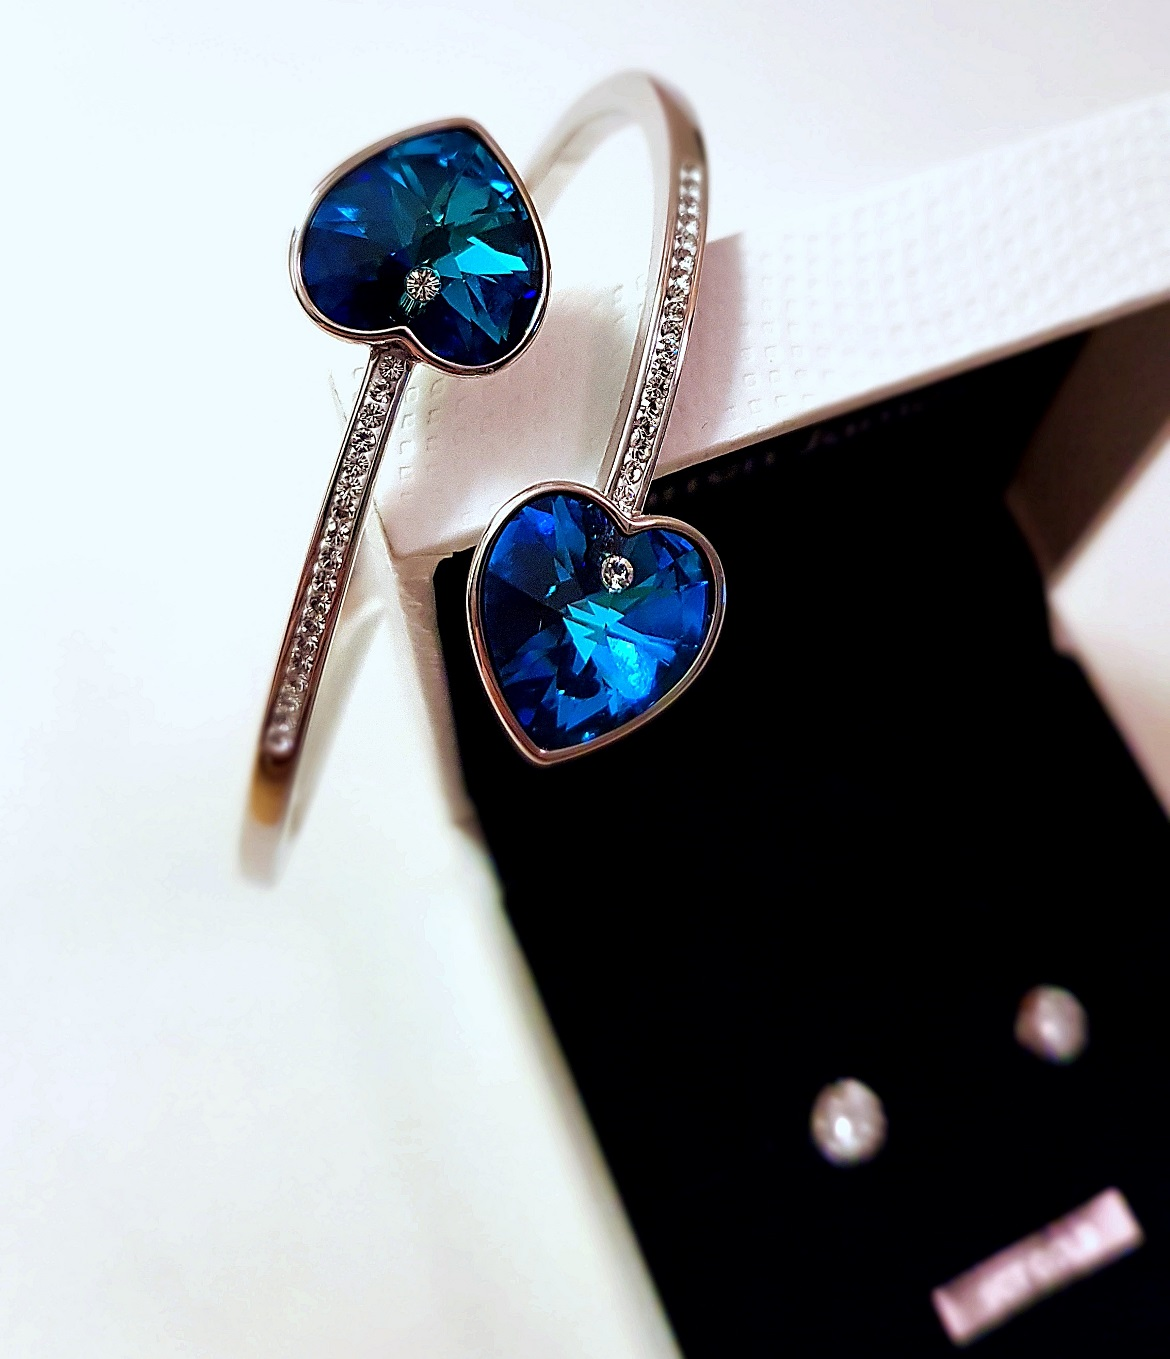 Swarovski bracelet and sparkly earrings - Christmas Presents Round Up by BeckyBecky Blogs